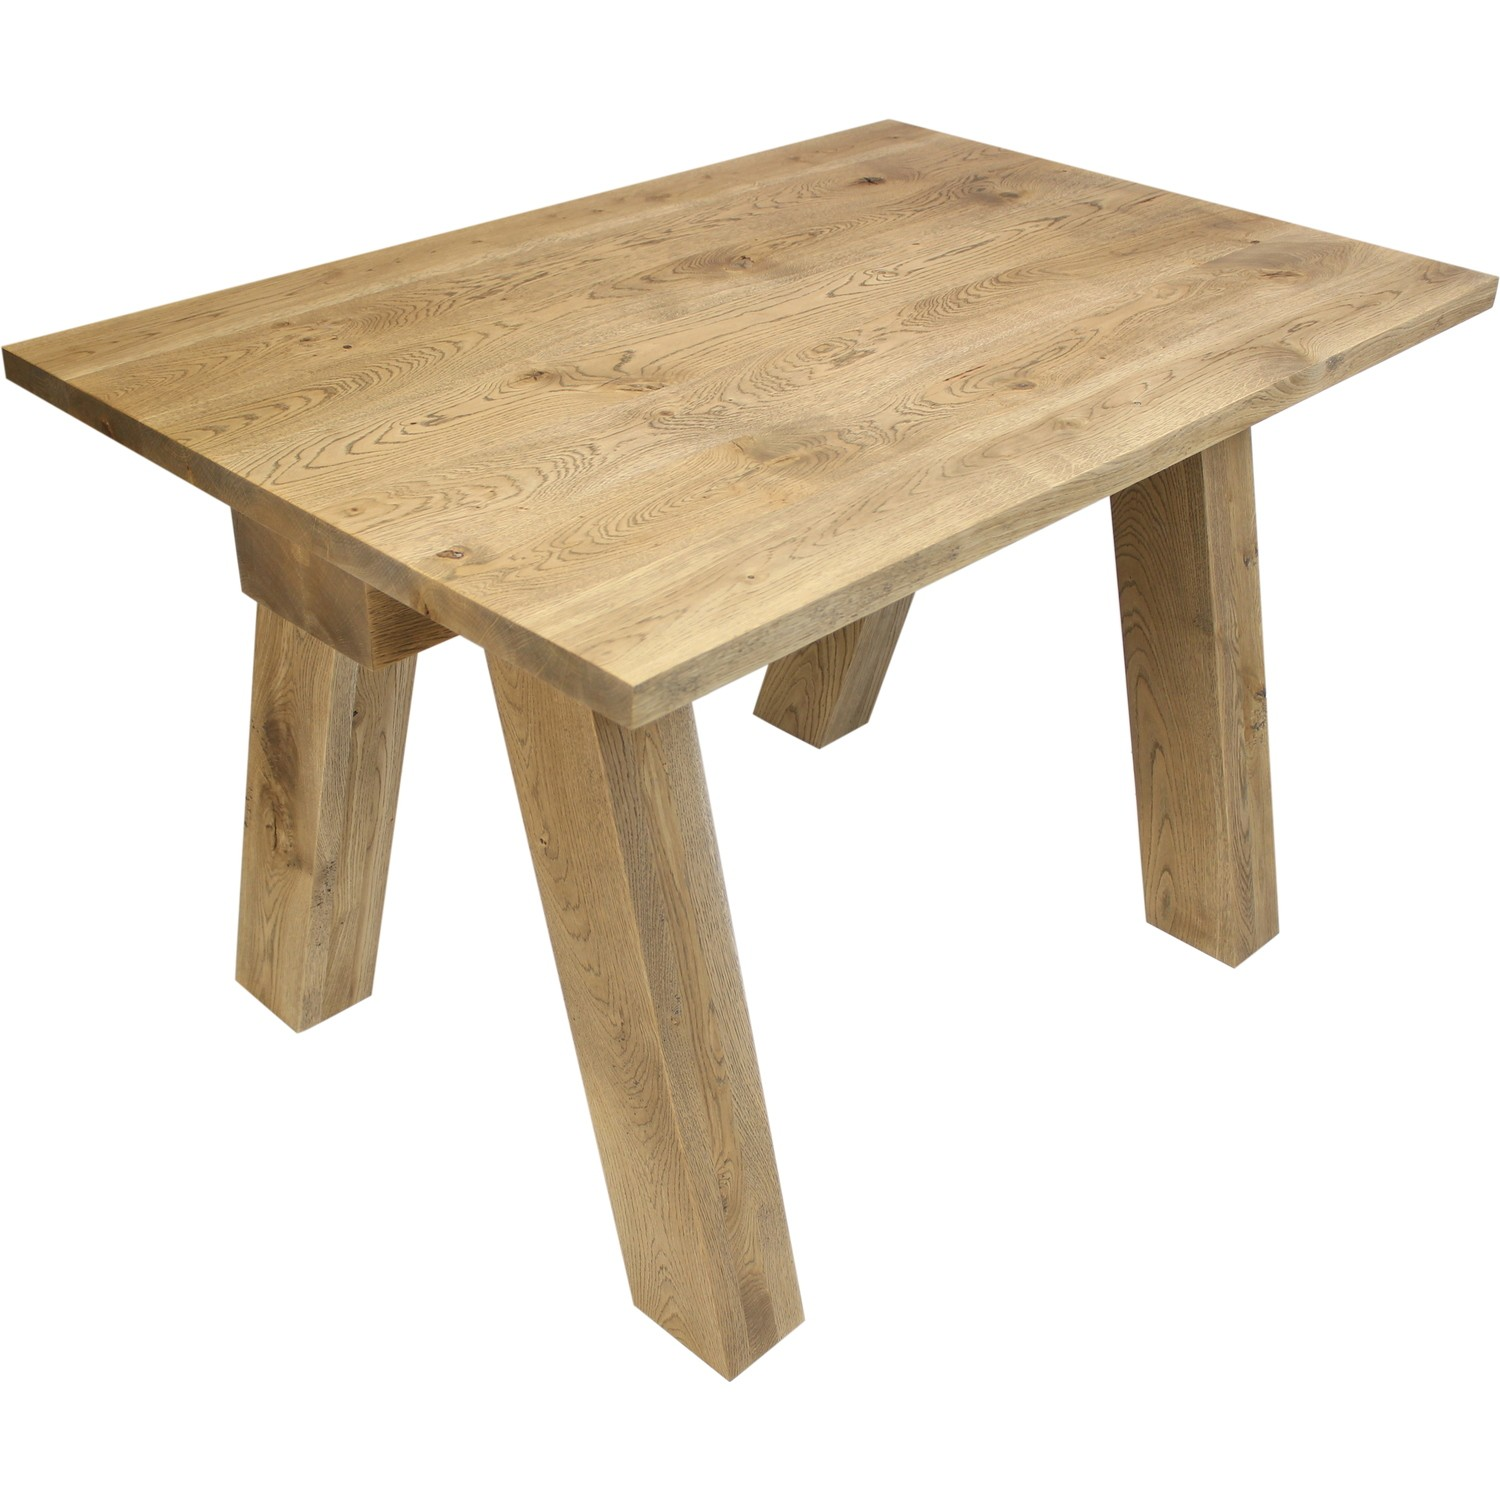 Table en ch ne massif balk - Table rectangulaire chene massif ...